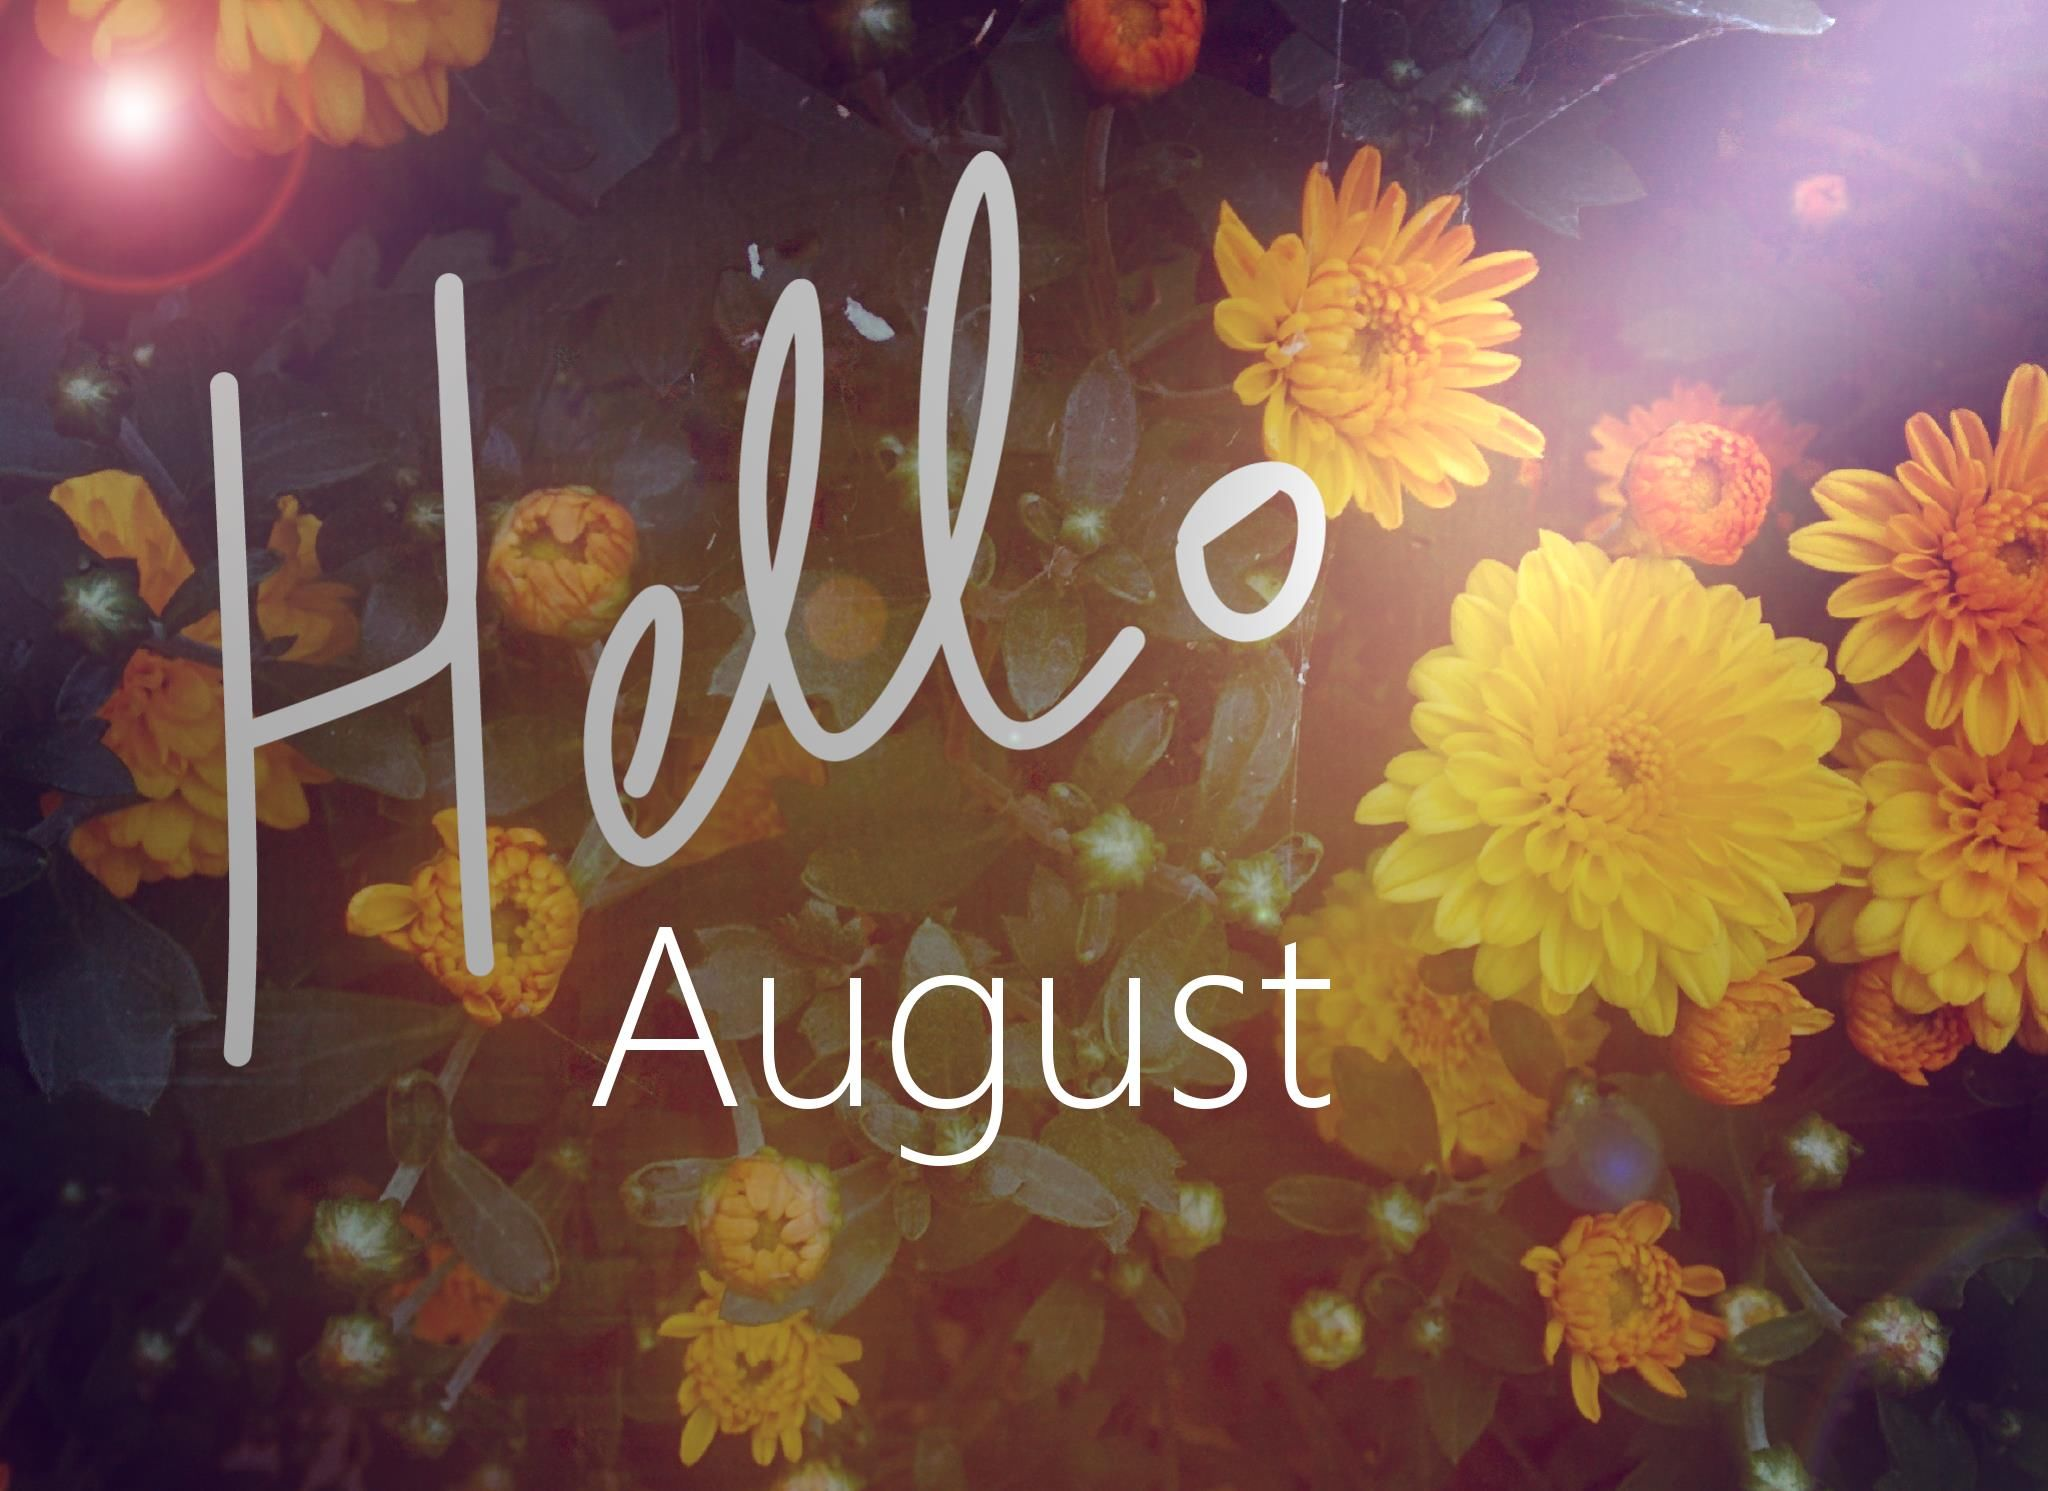 August Wallpapers   Top August Backgrounds   WallpaperAccess 2048x1491